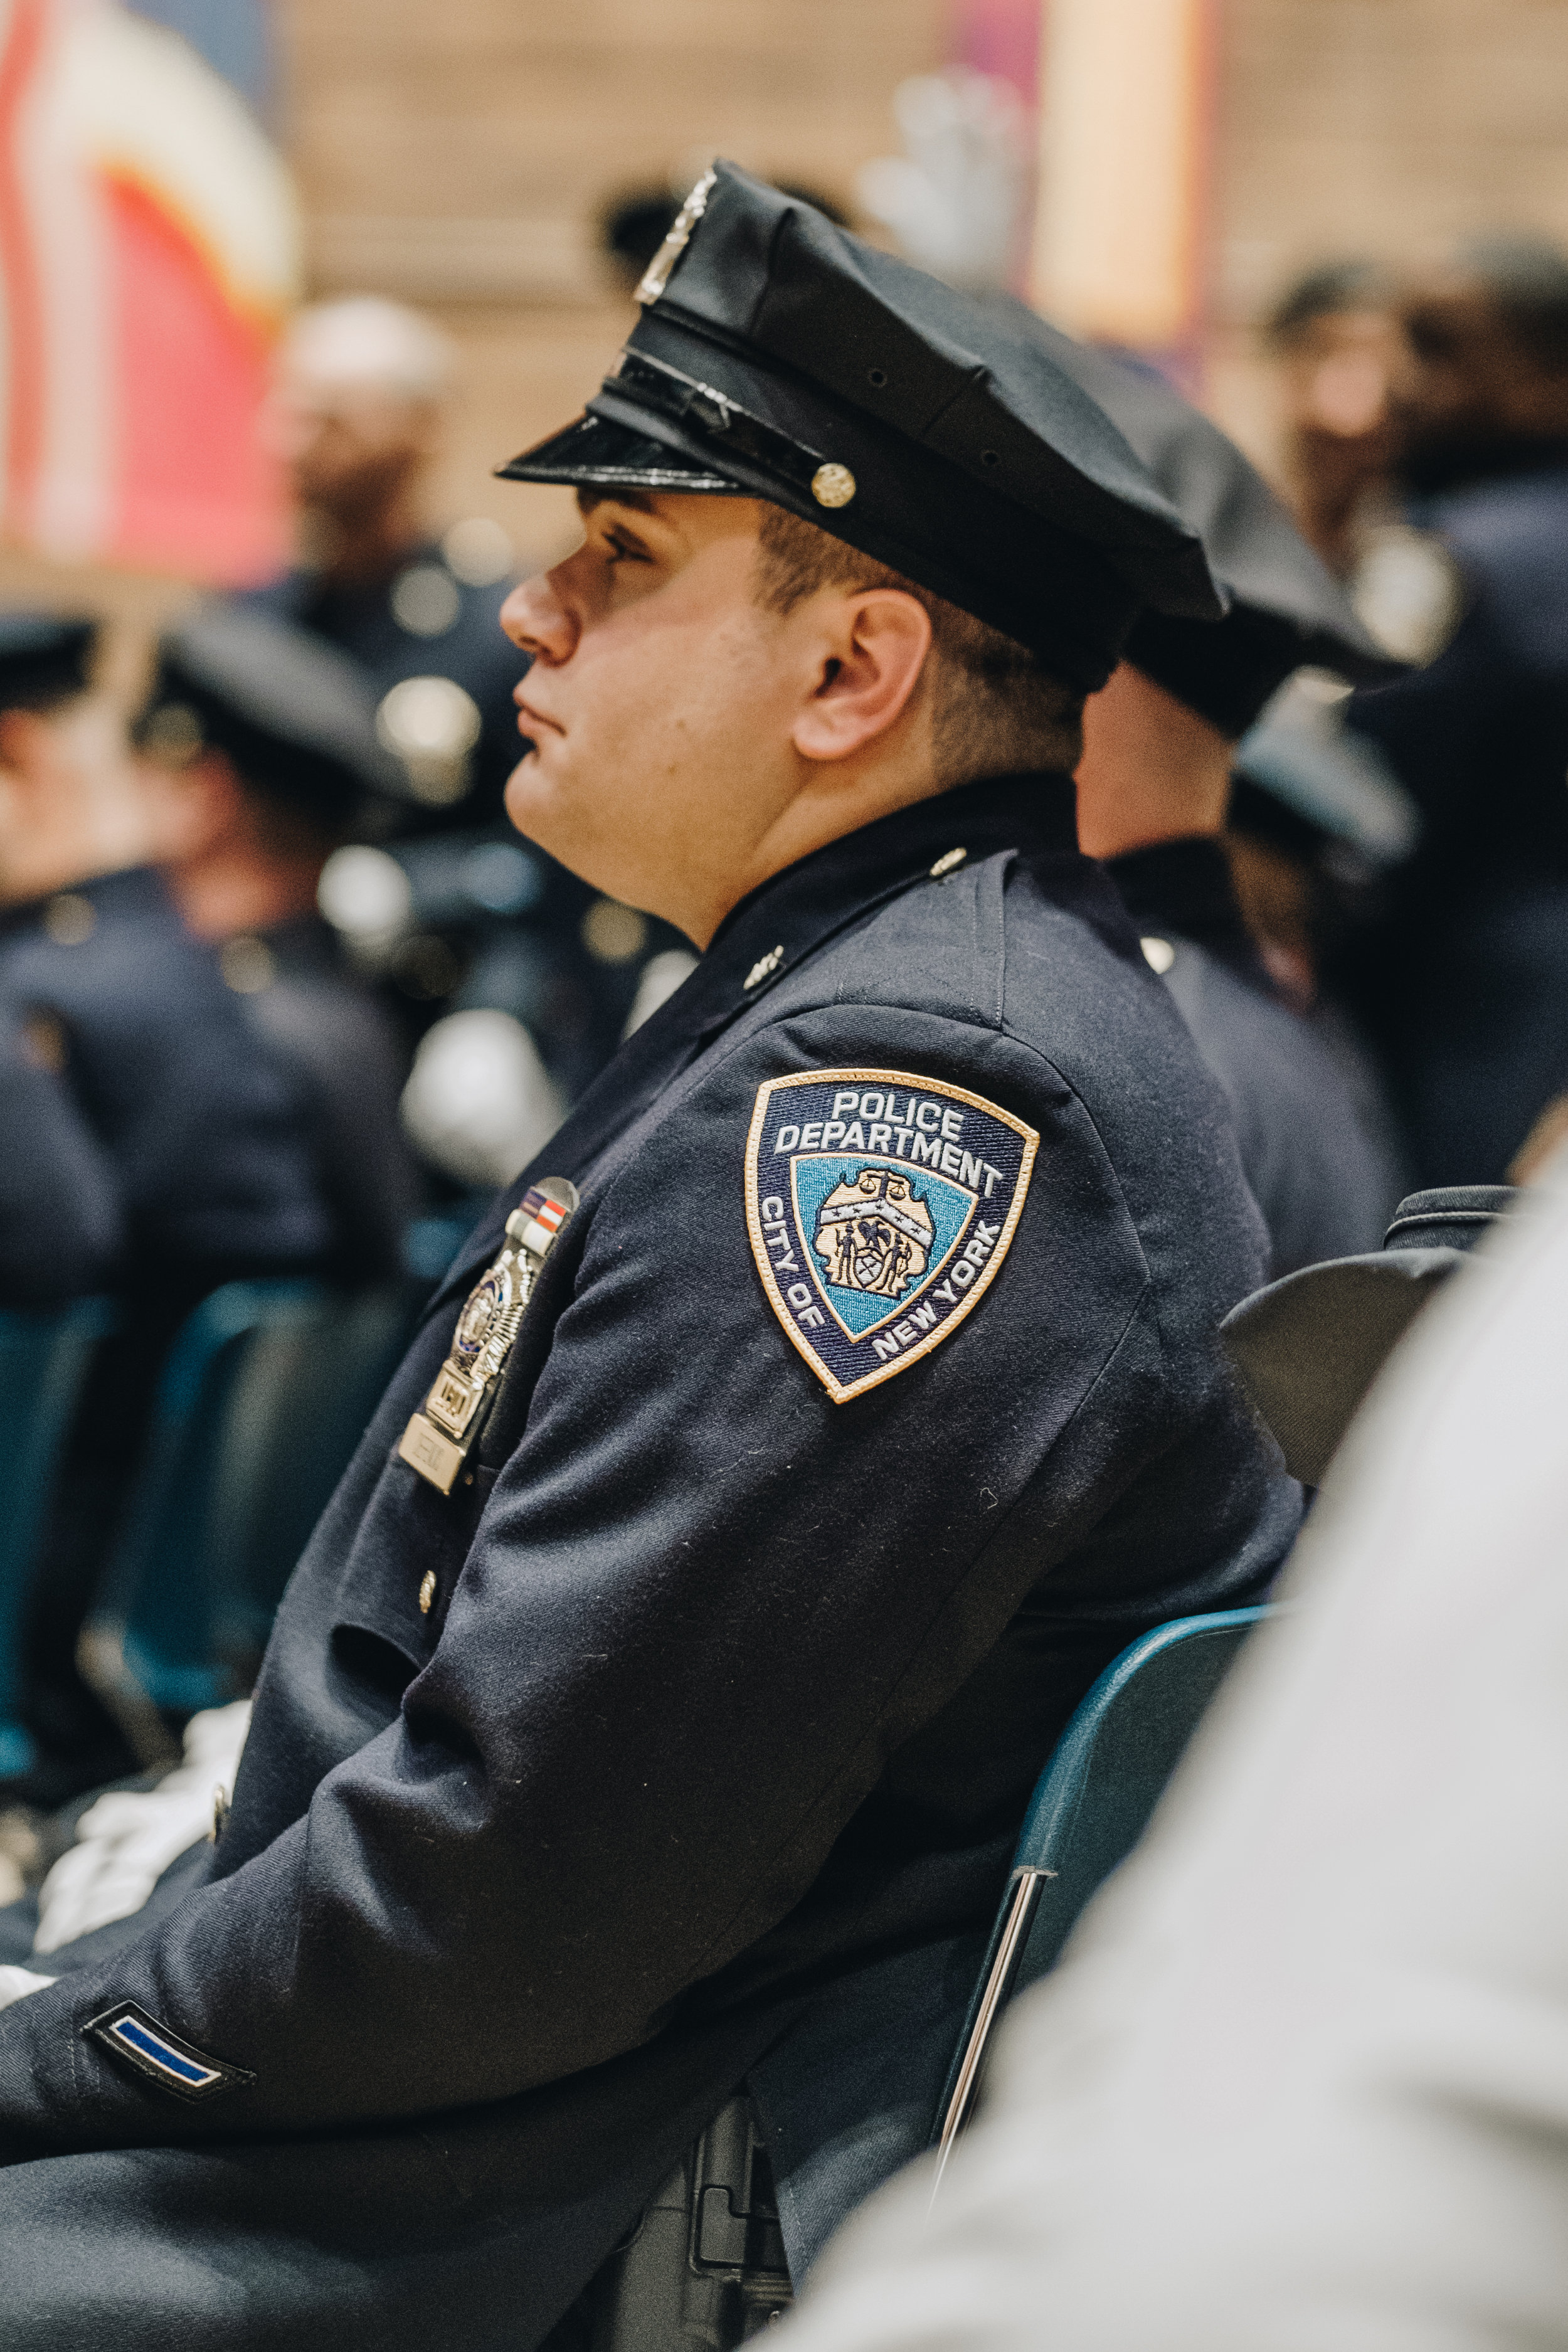 NYPD_Promotions-15.jpg